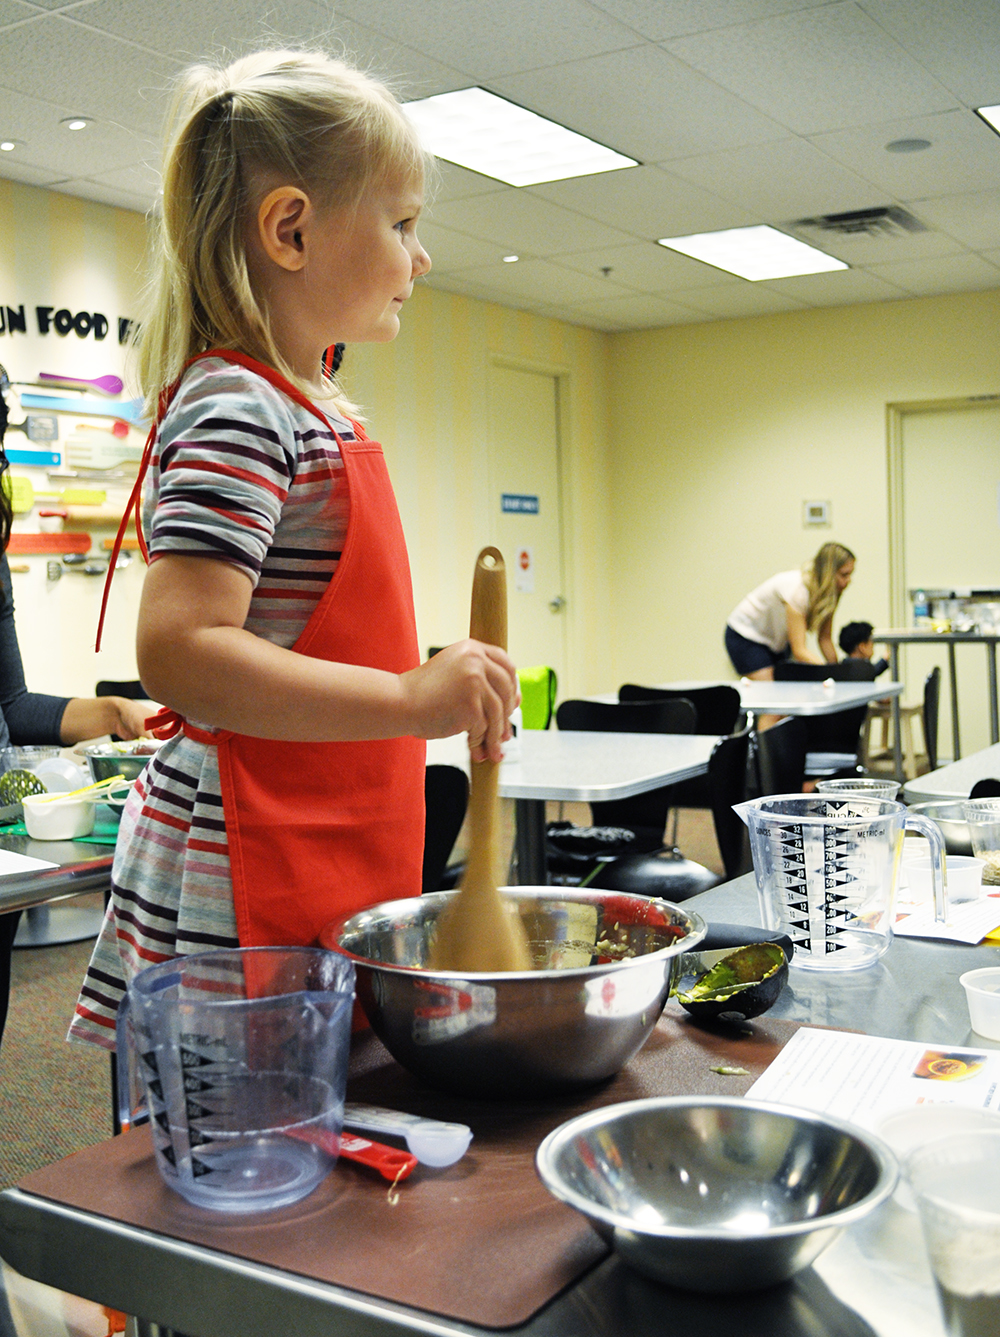 Arizona Adventures: the Toddler Test Kitchen at the Halle Heart Museum in Tempe is a fun, inexpensive way for kids between ages 2 and 6 to learn about cooking, nutrition, and more